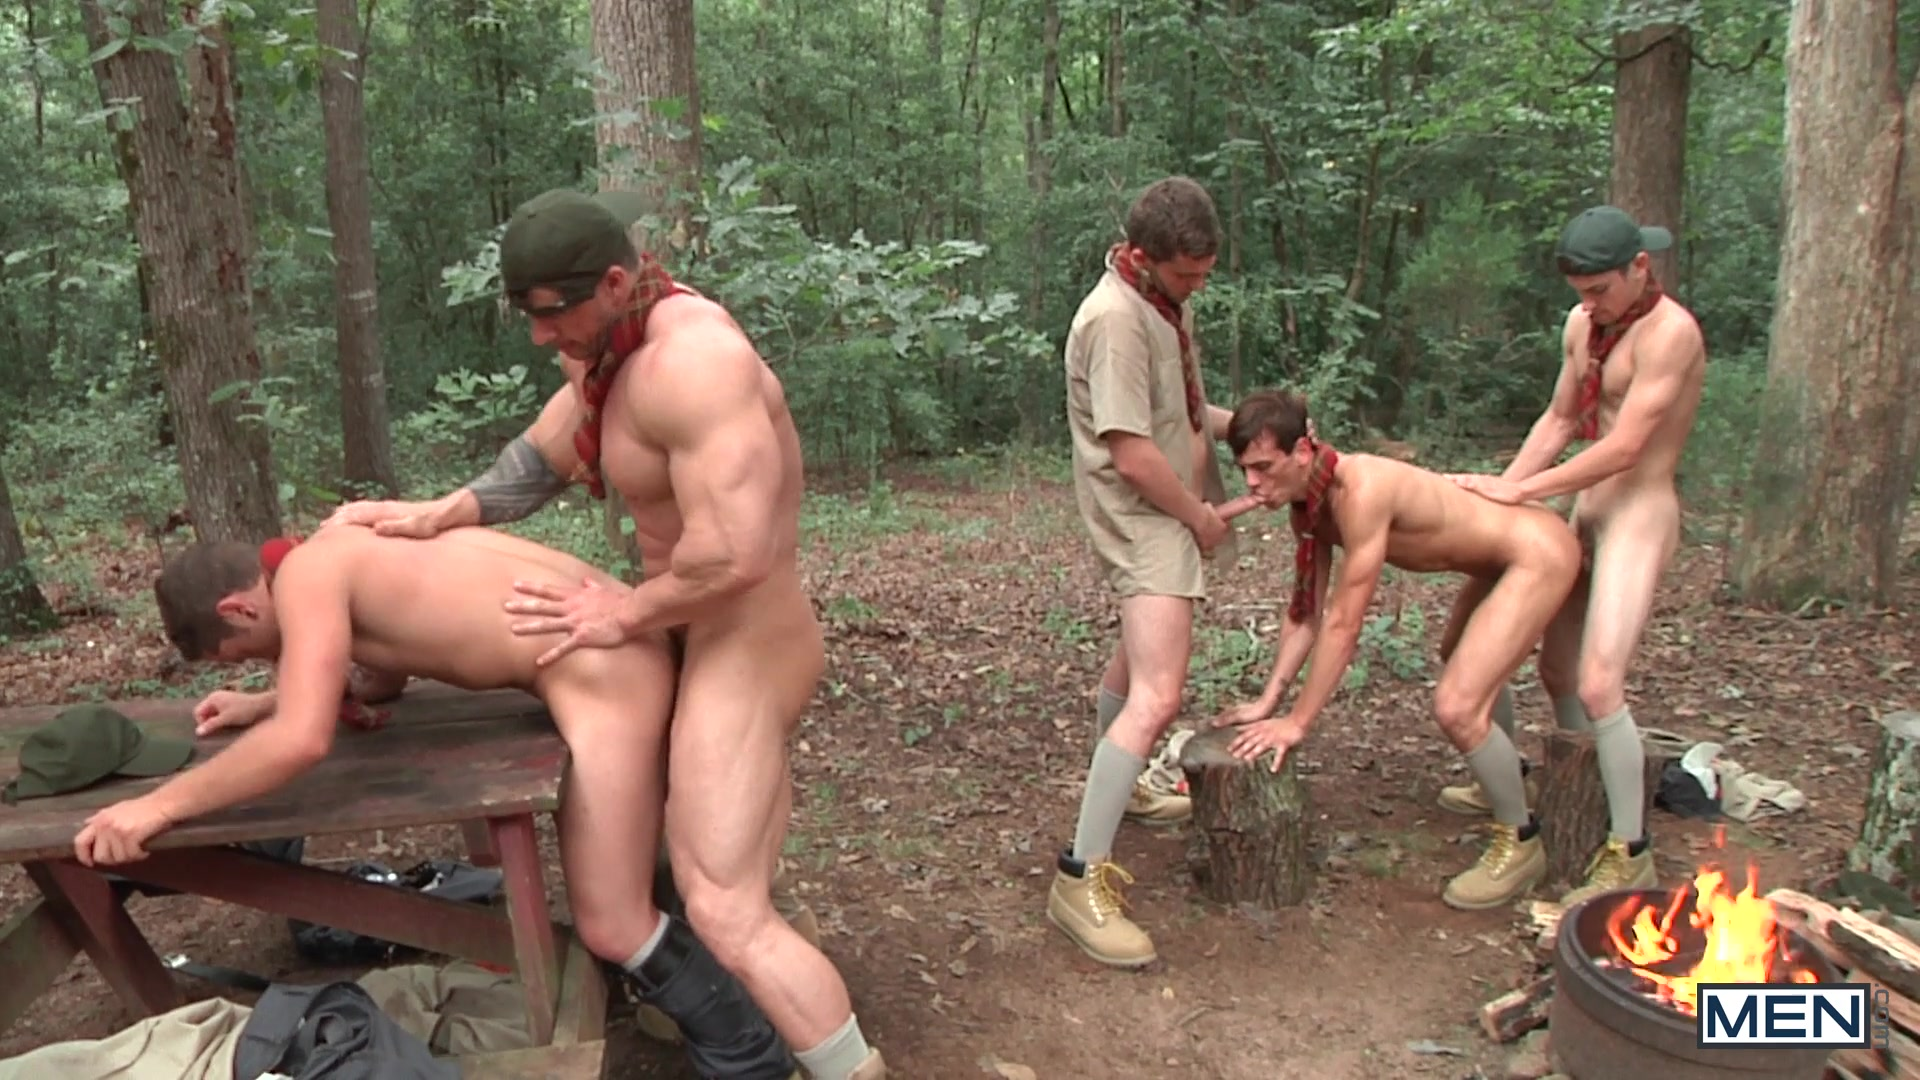 Watch Scouts Part 4 – Ck Steel – Jack Radley – Johnny Rapid – Zac Stevens – Zeb Atlas – Jo – Jizz Orgy (MEN.COM) Gay Porn Tube Videos Gifs And Free XXX HD Sex Movies Photos Online